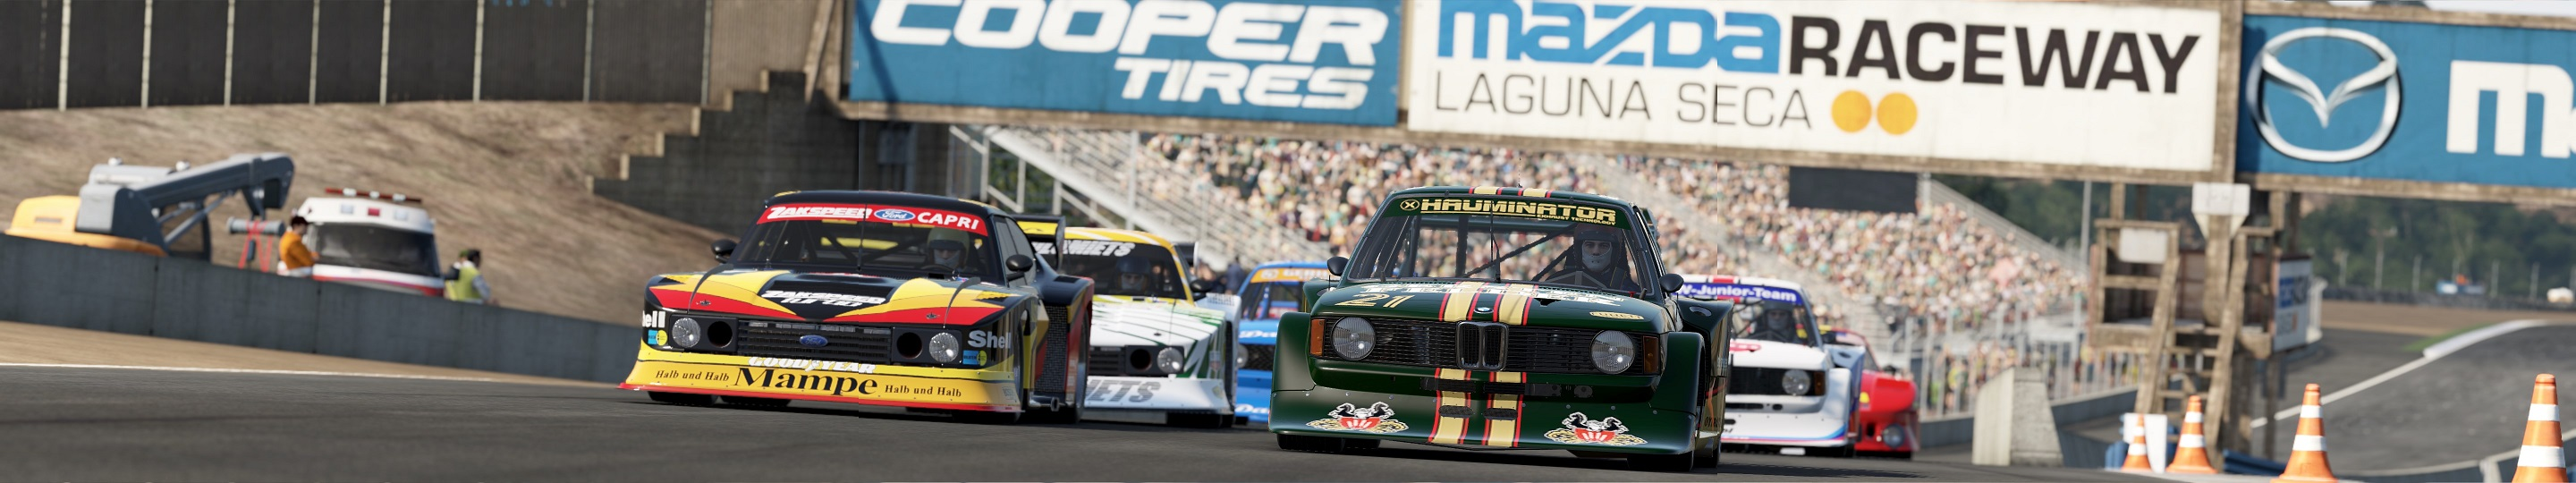 PCARS GROUP 5 3 LAGUNA SECA.jpg